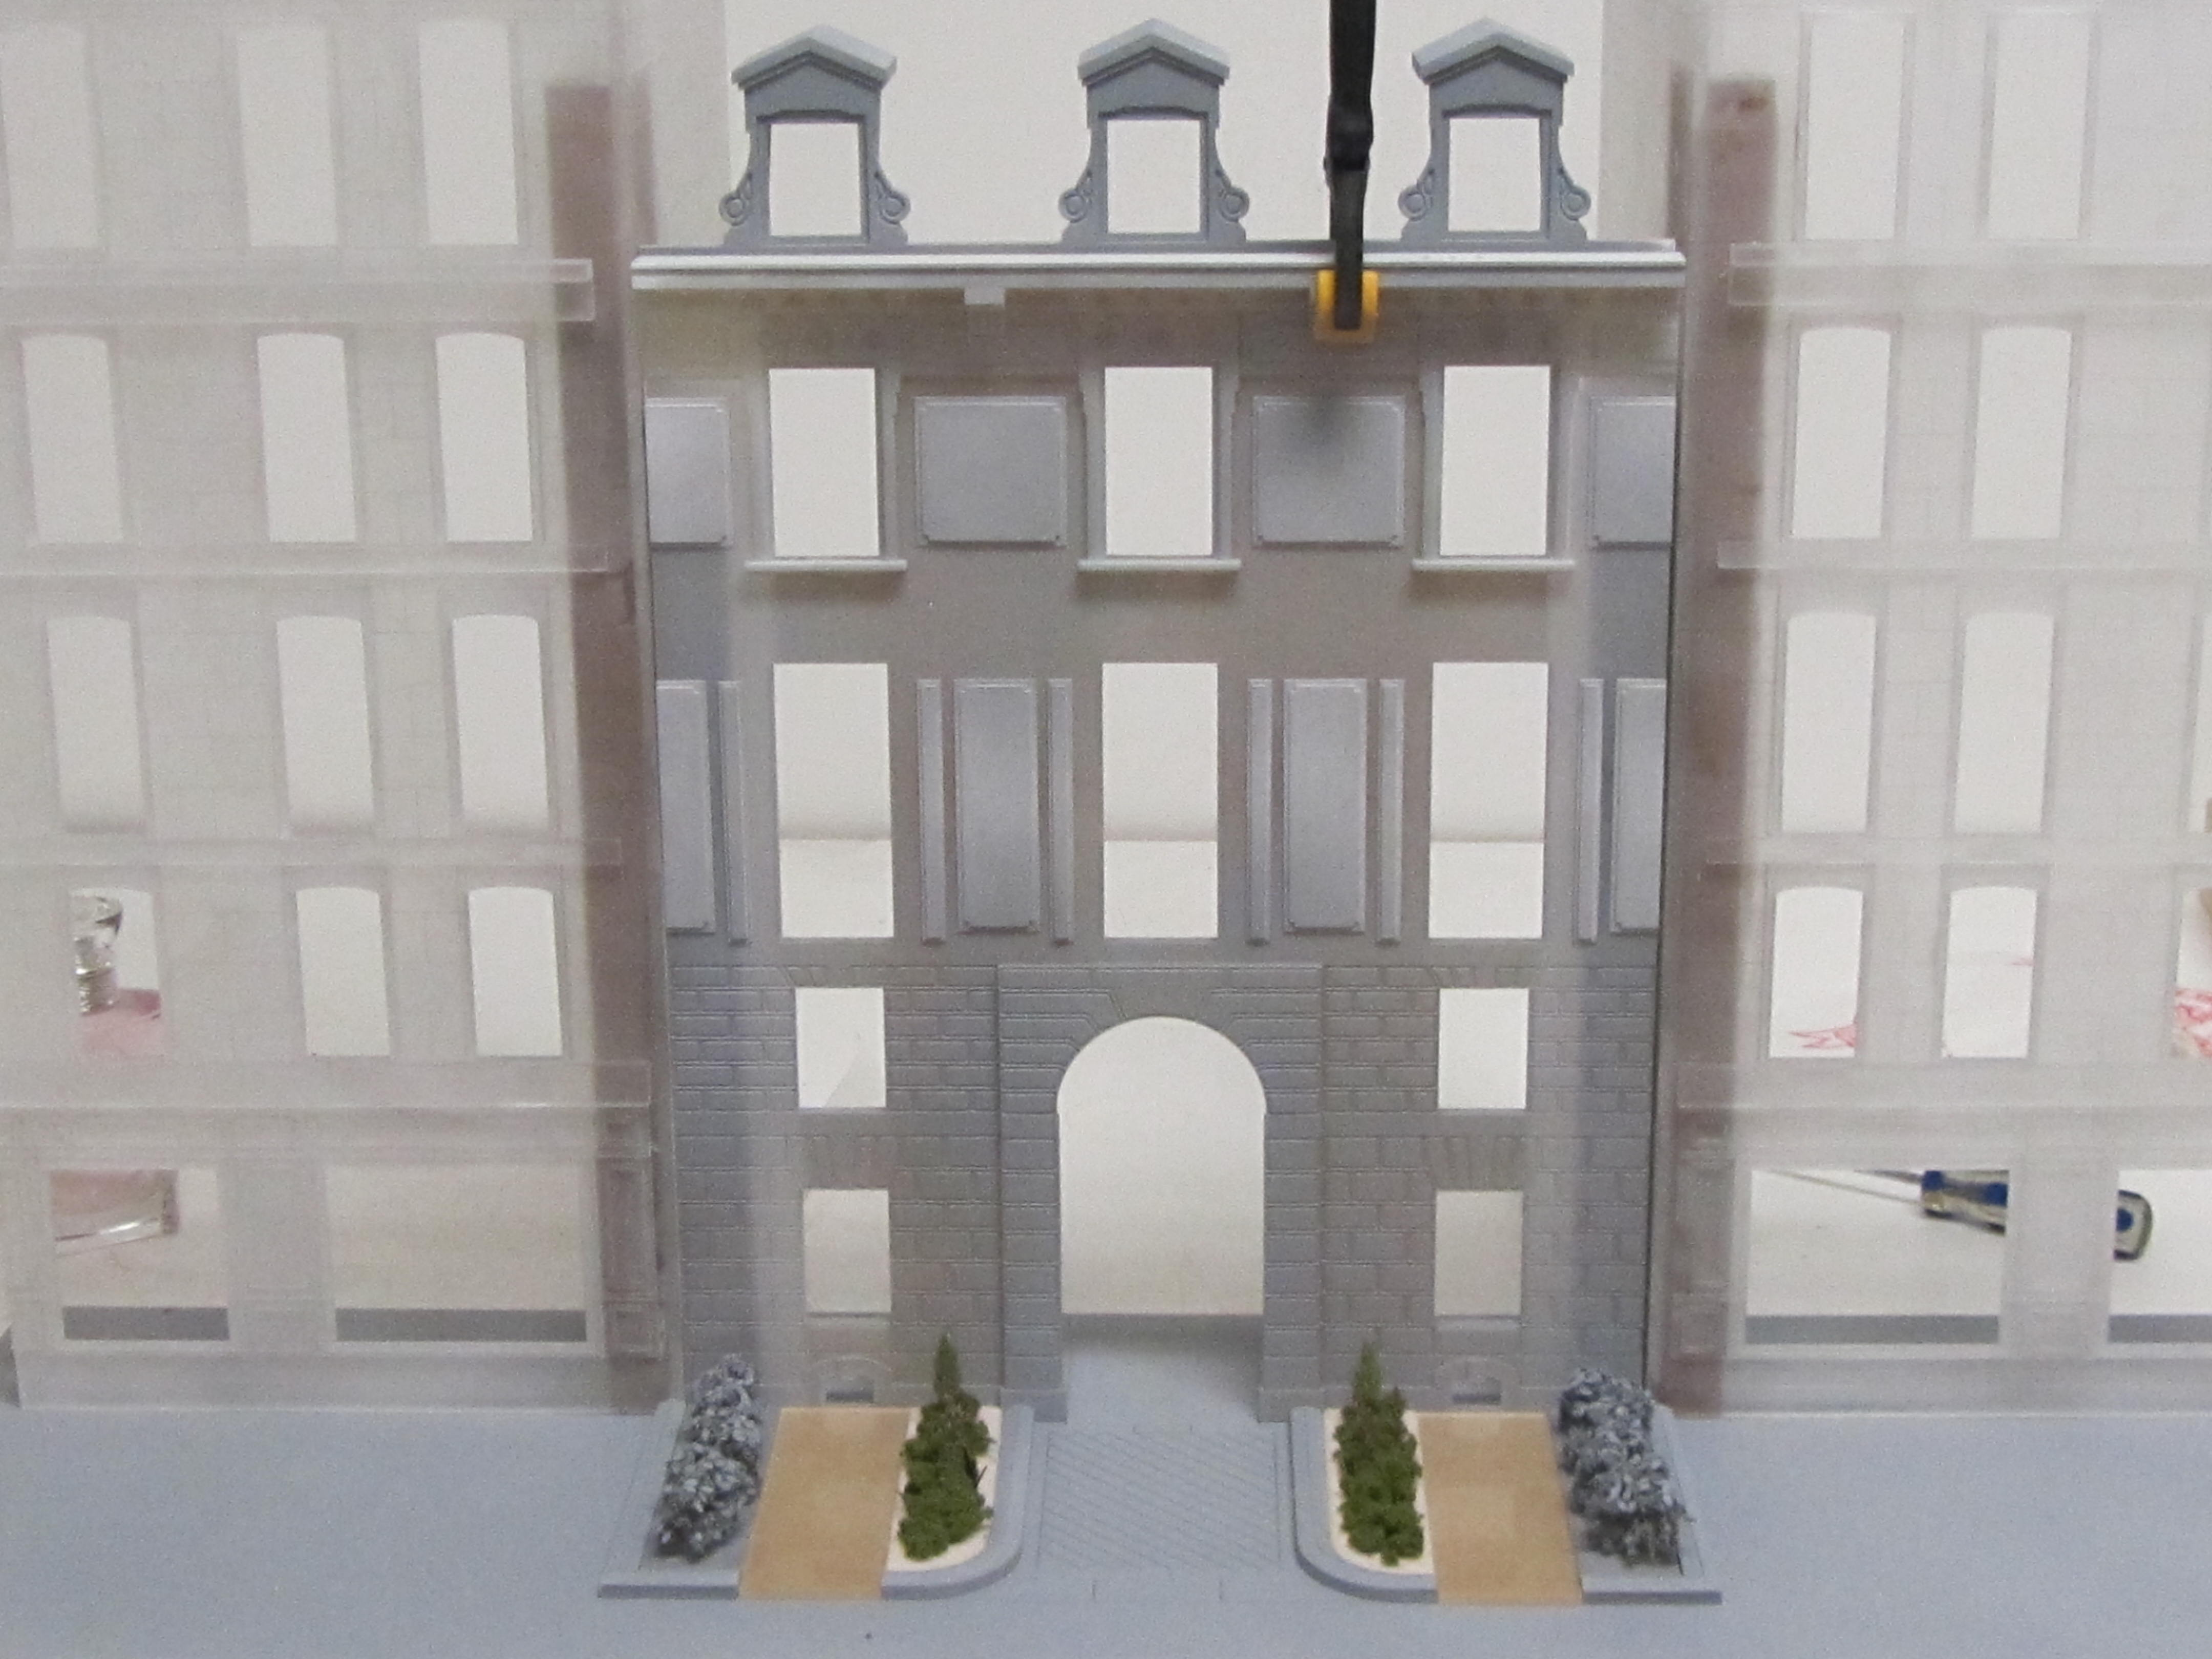 architectural prop model